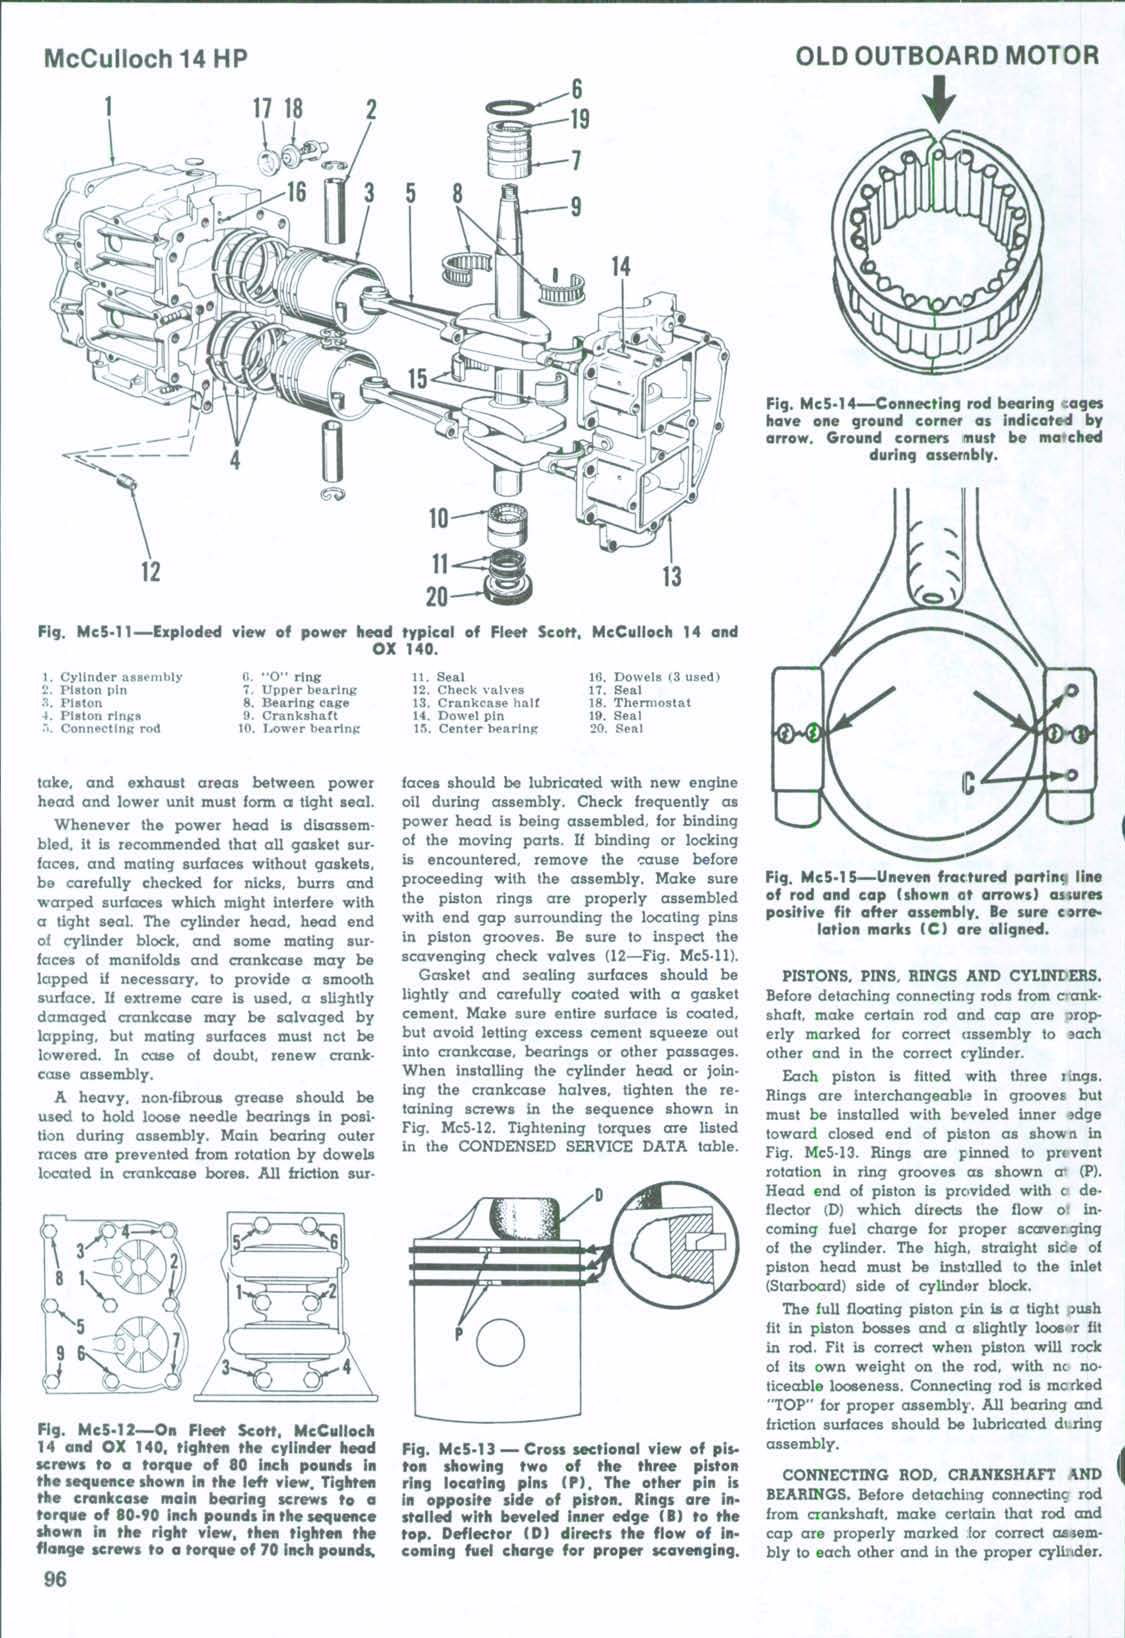 I need a parts manual Scott McCulloch 12 or 14HP 1960